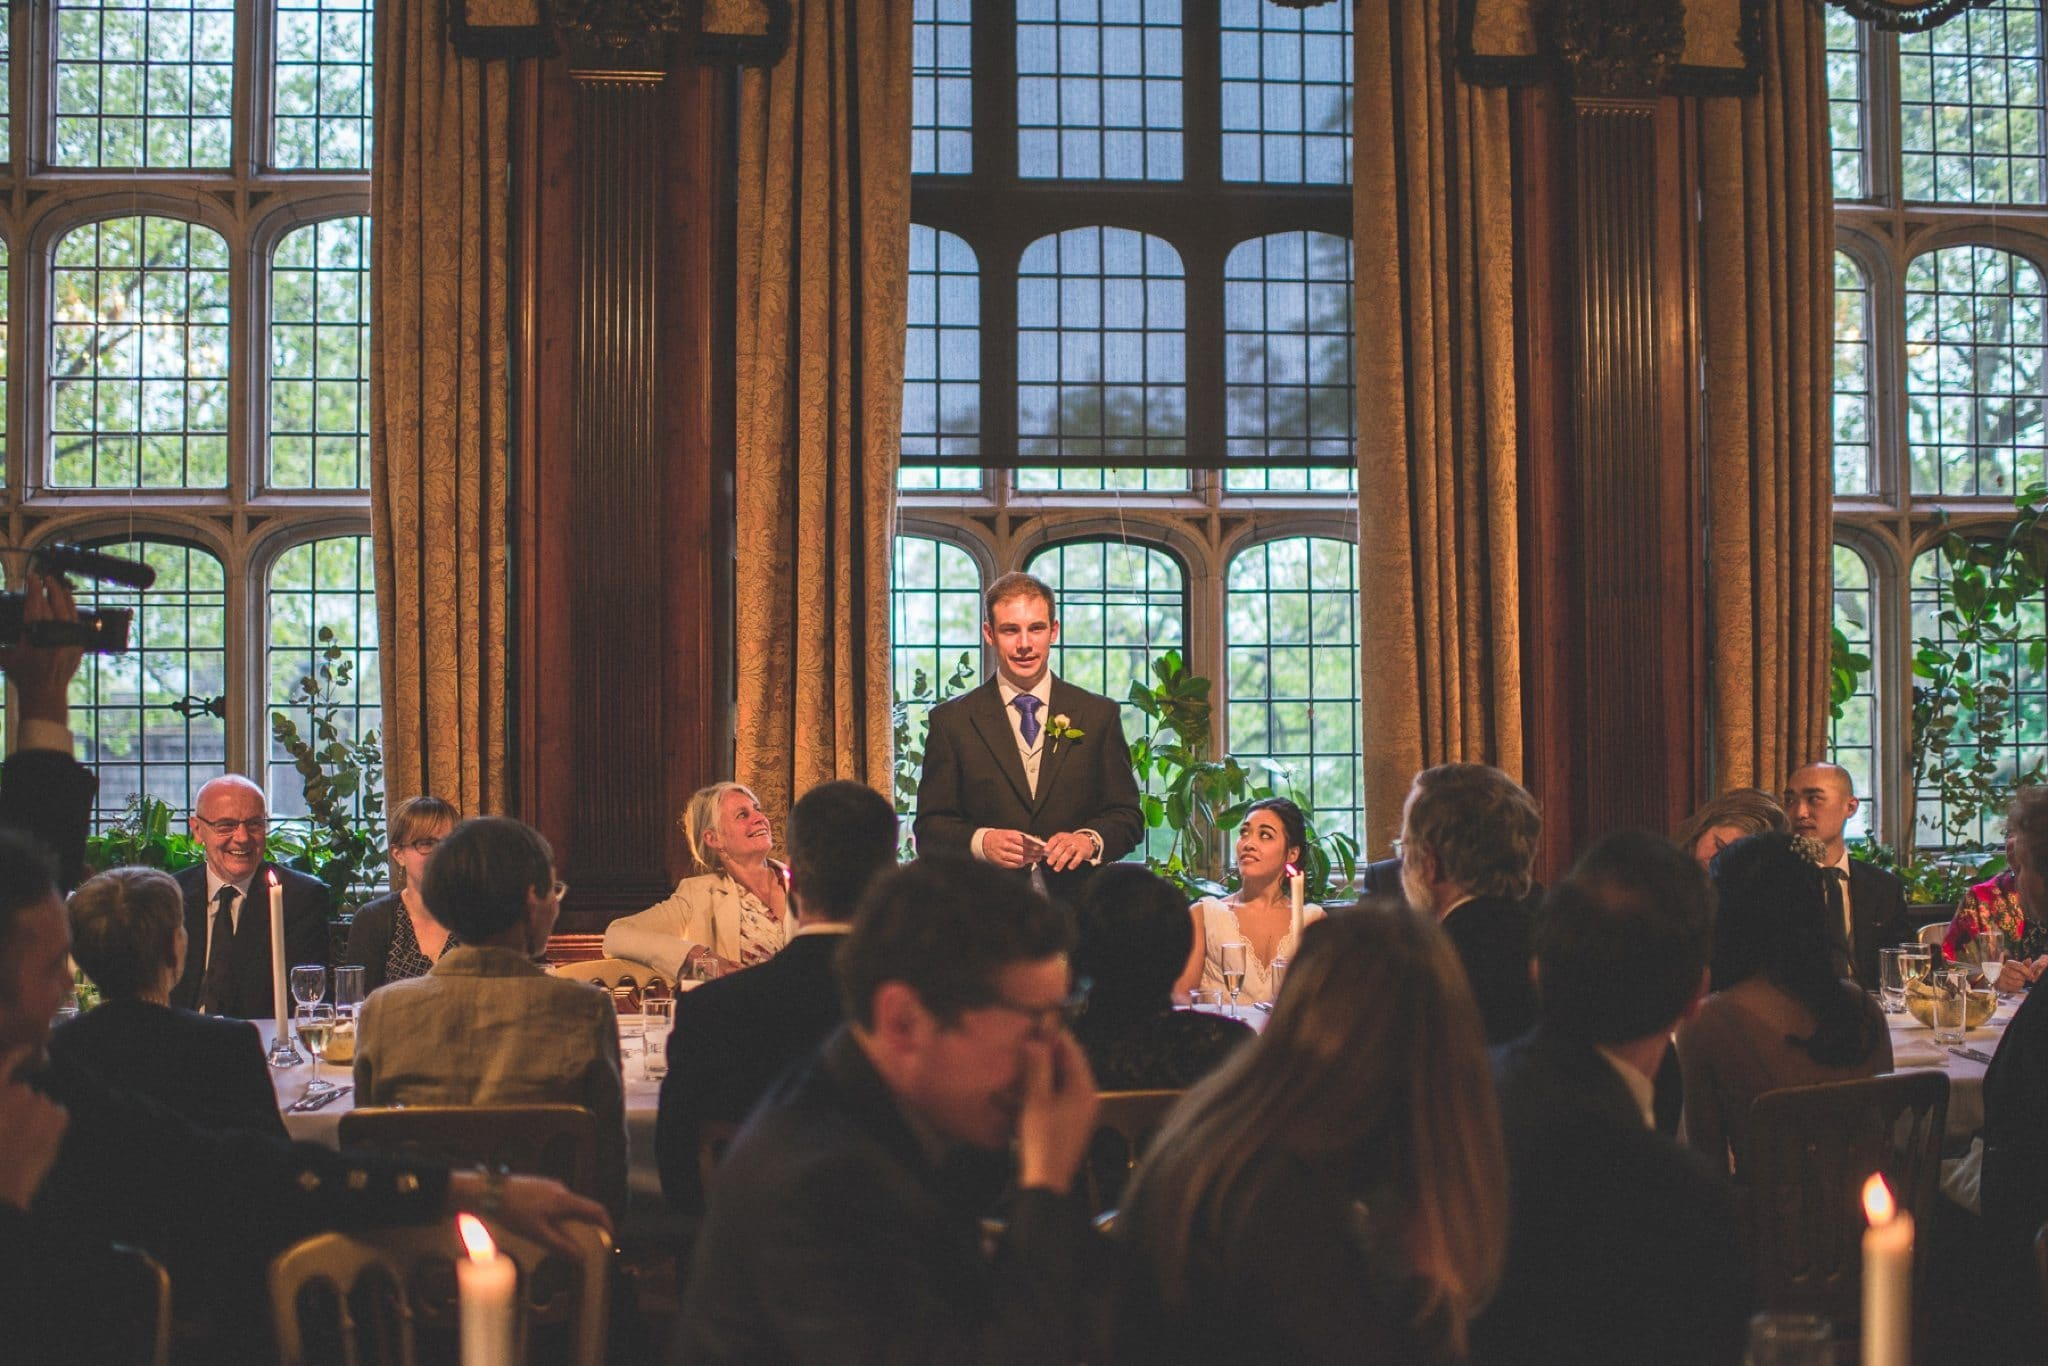 Groom's Speech at Two Temple Place Great Hall